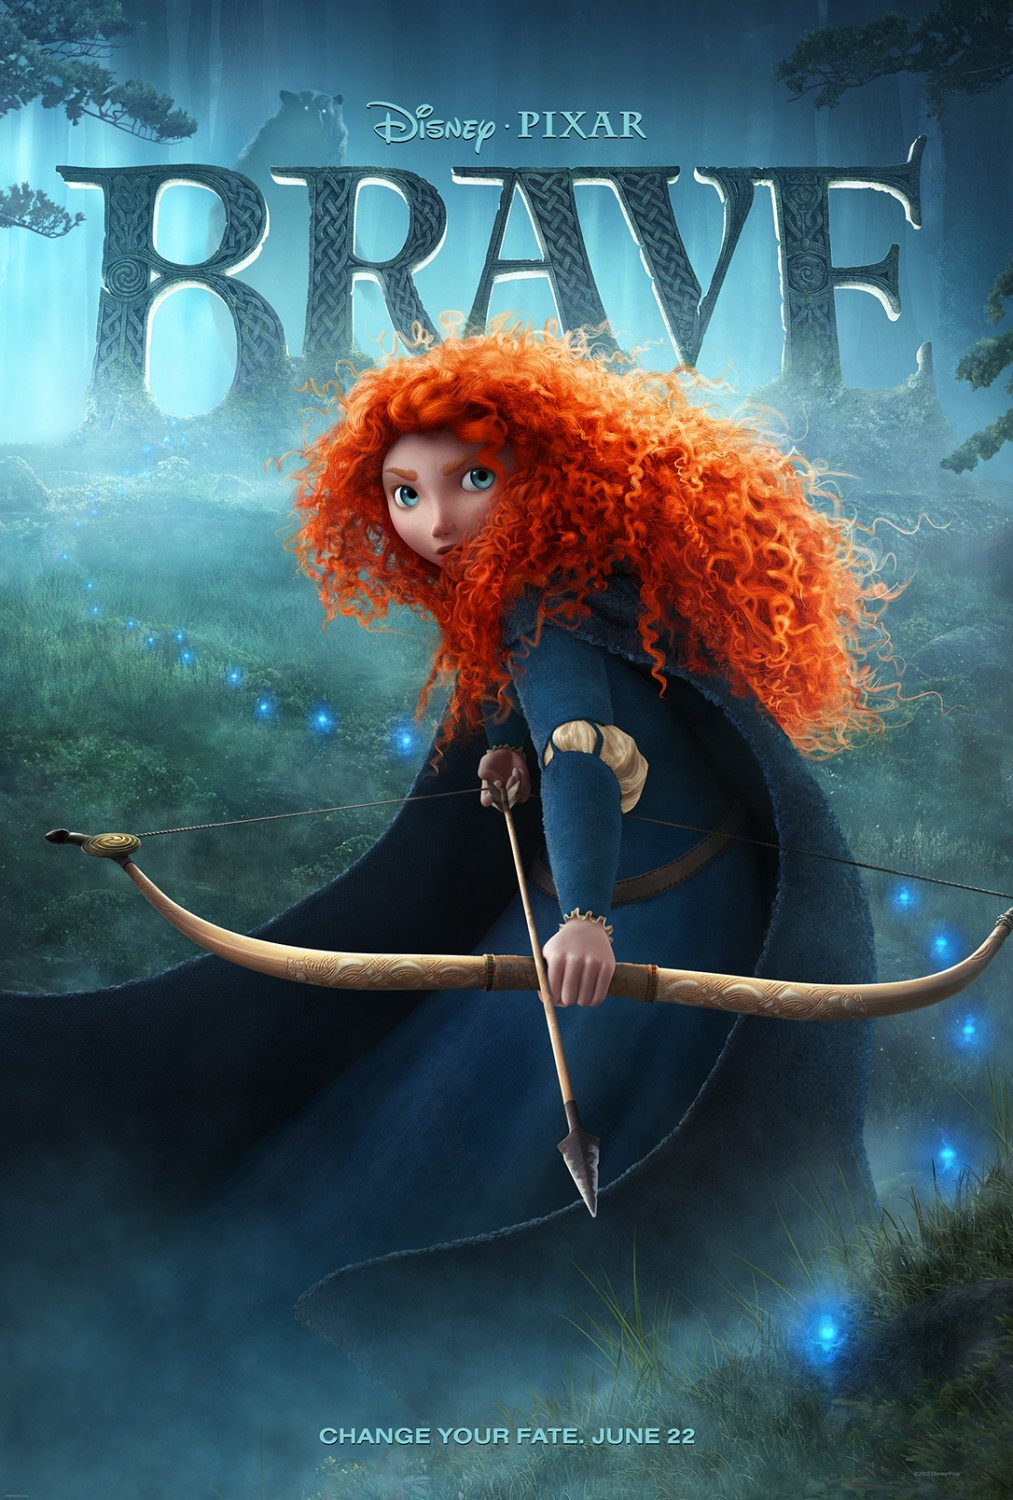 Brave (2012) - Directed By: Mark Andrews, Brenda ChapmanStarring: Kelly Macdonald, Billy Connolly, Emma Thompson, Robbie Coltrane, Craig Ferguson, John RatzenbergerRated: G RatedRun Time: 1h 33mTMM Score: 4 StarsStrengths: Setting, Wild Magic, Atmosphere, Demographic TargetWeakness: Humor